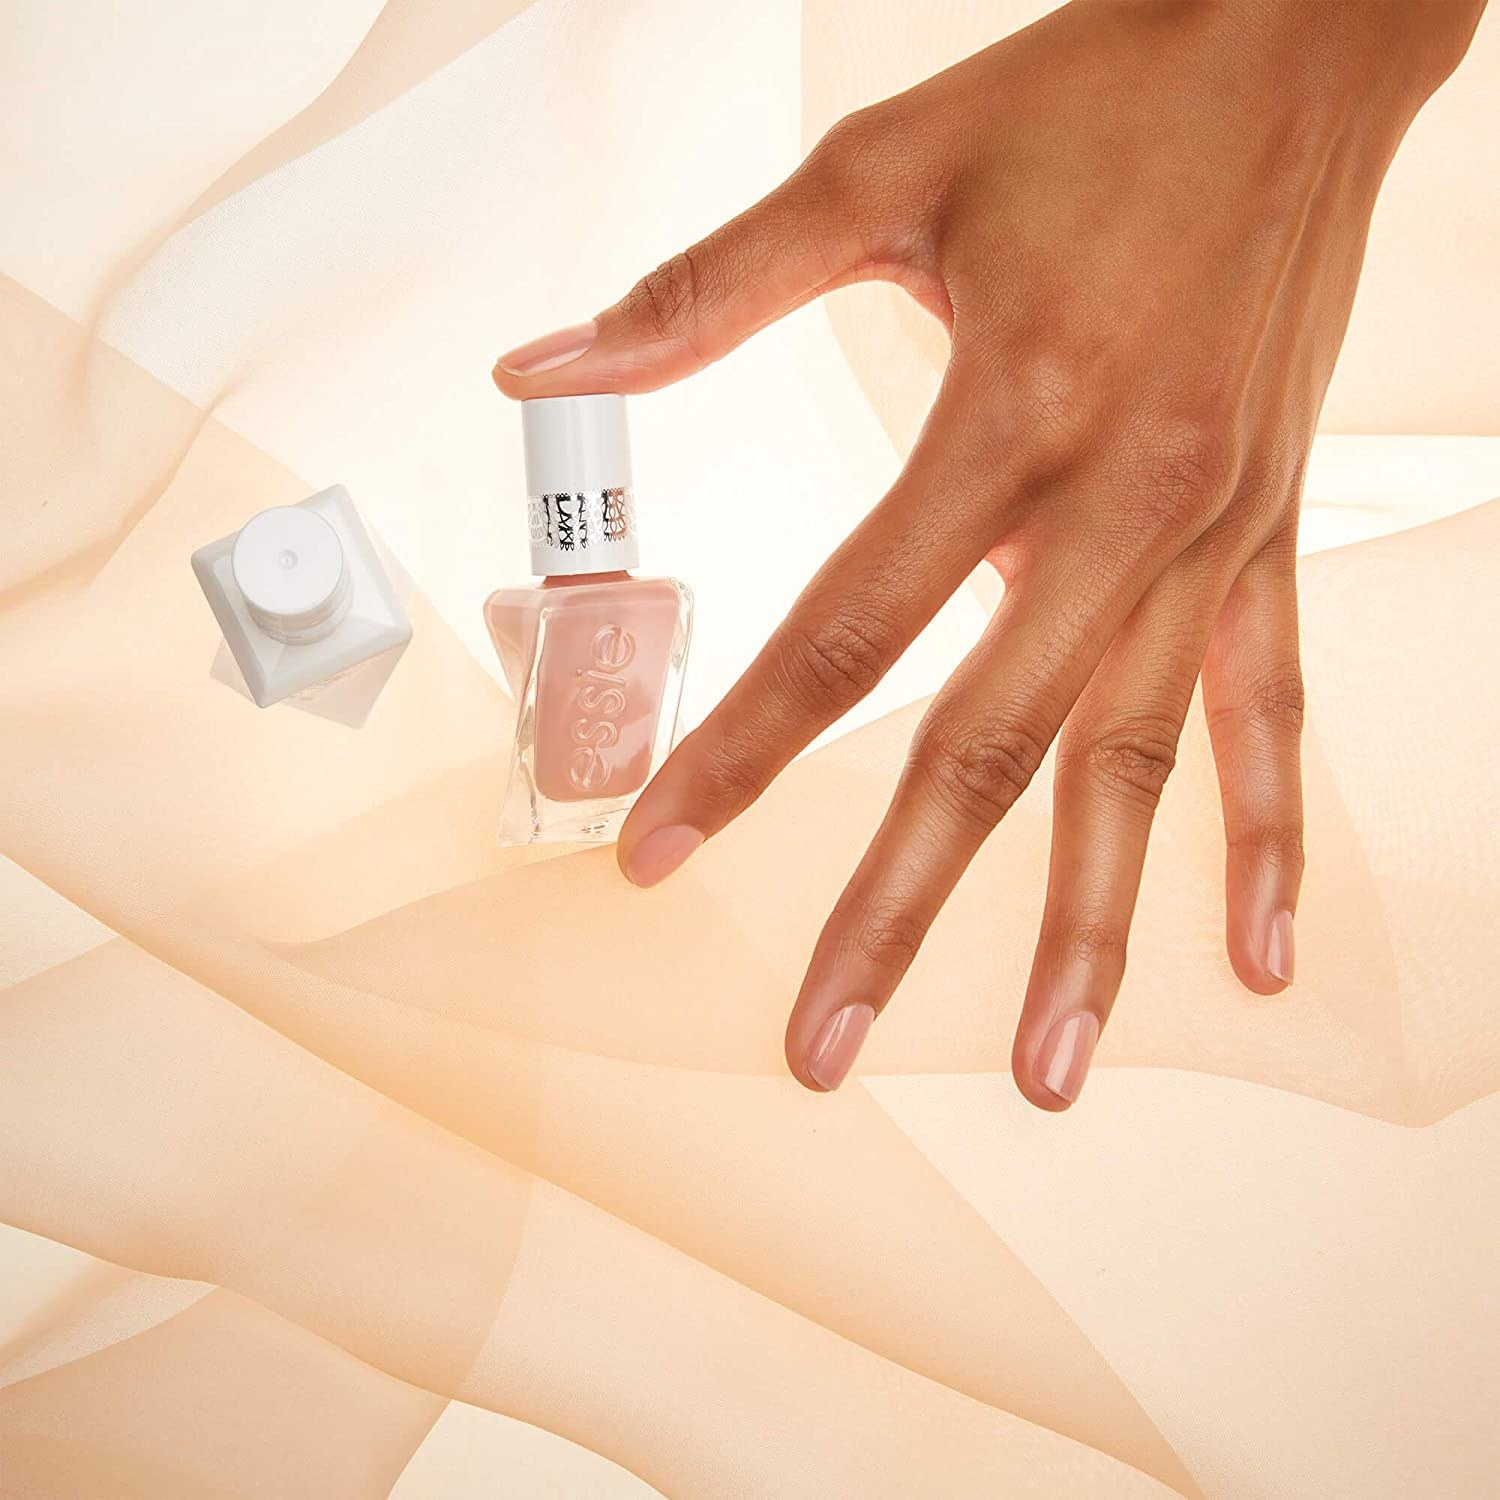 A person with painted nails holding a bottle of nail polish between their thumb and pointer finger